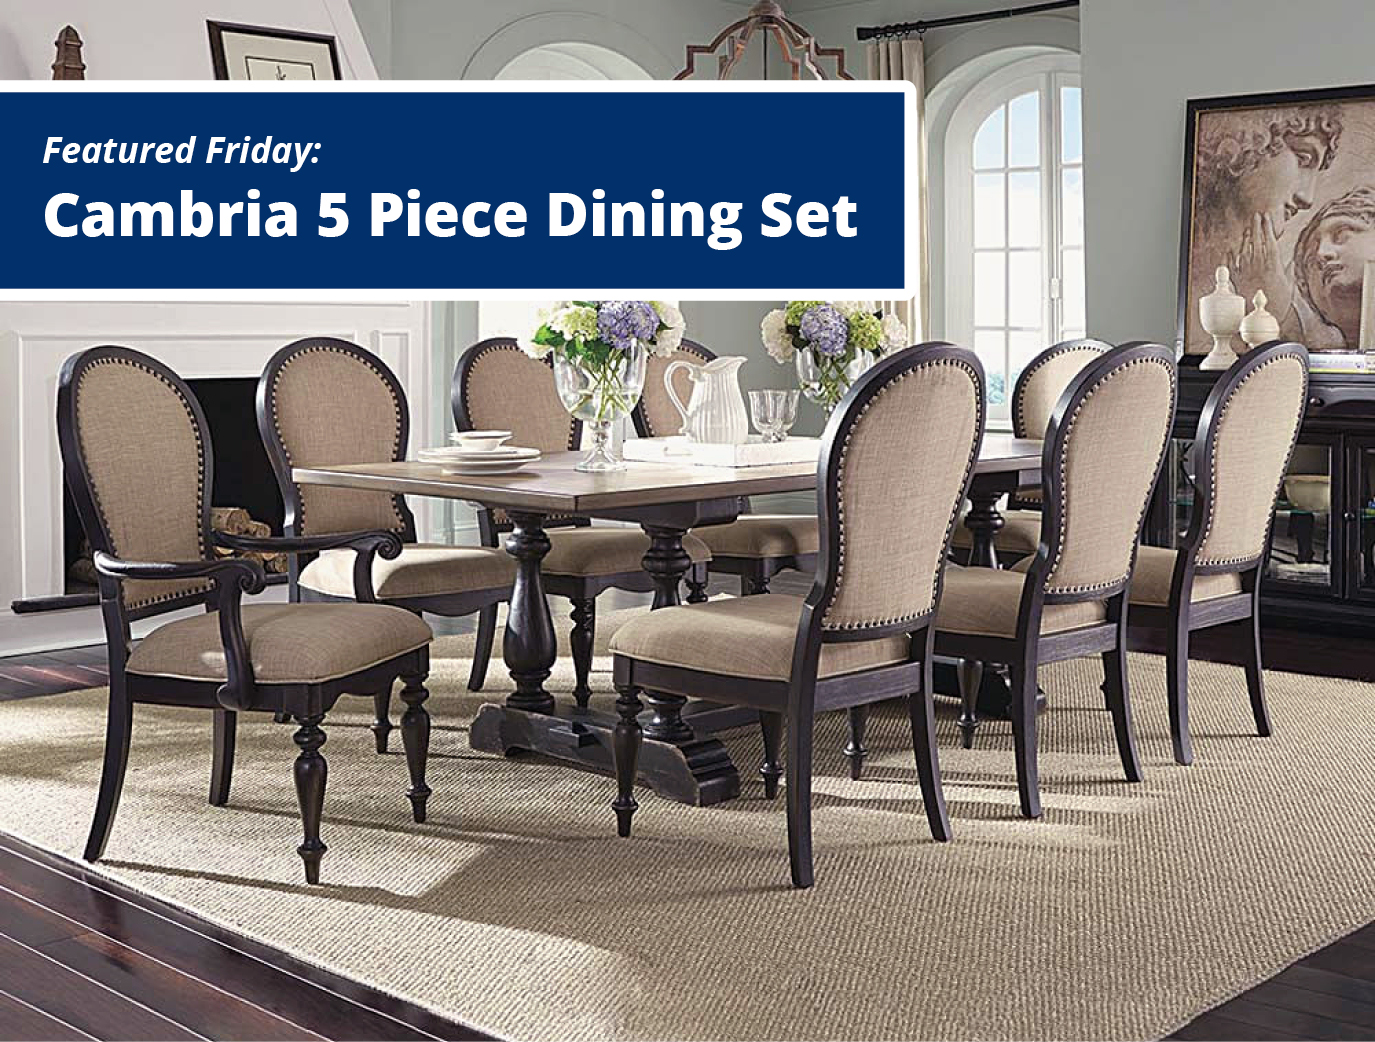 Featured Friday: Cambria 5 Piece Dining Set